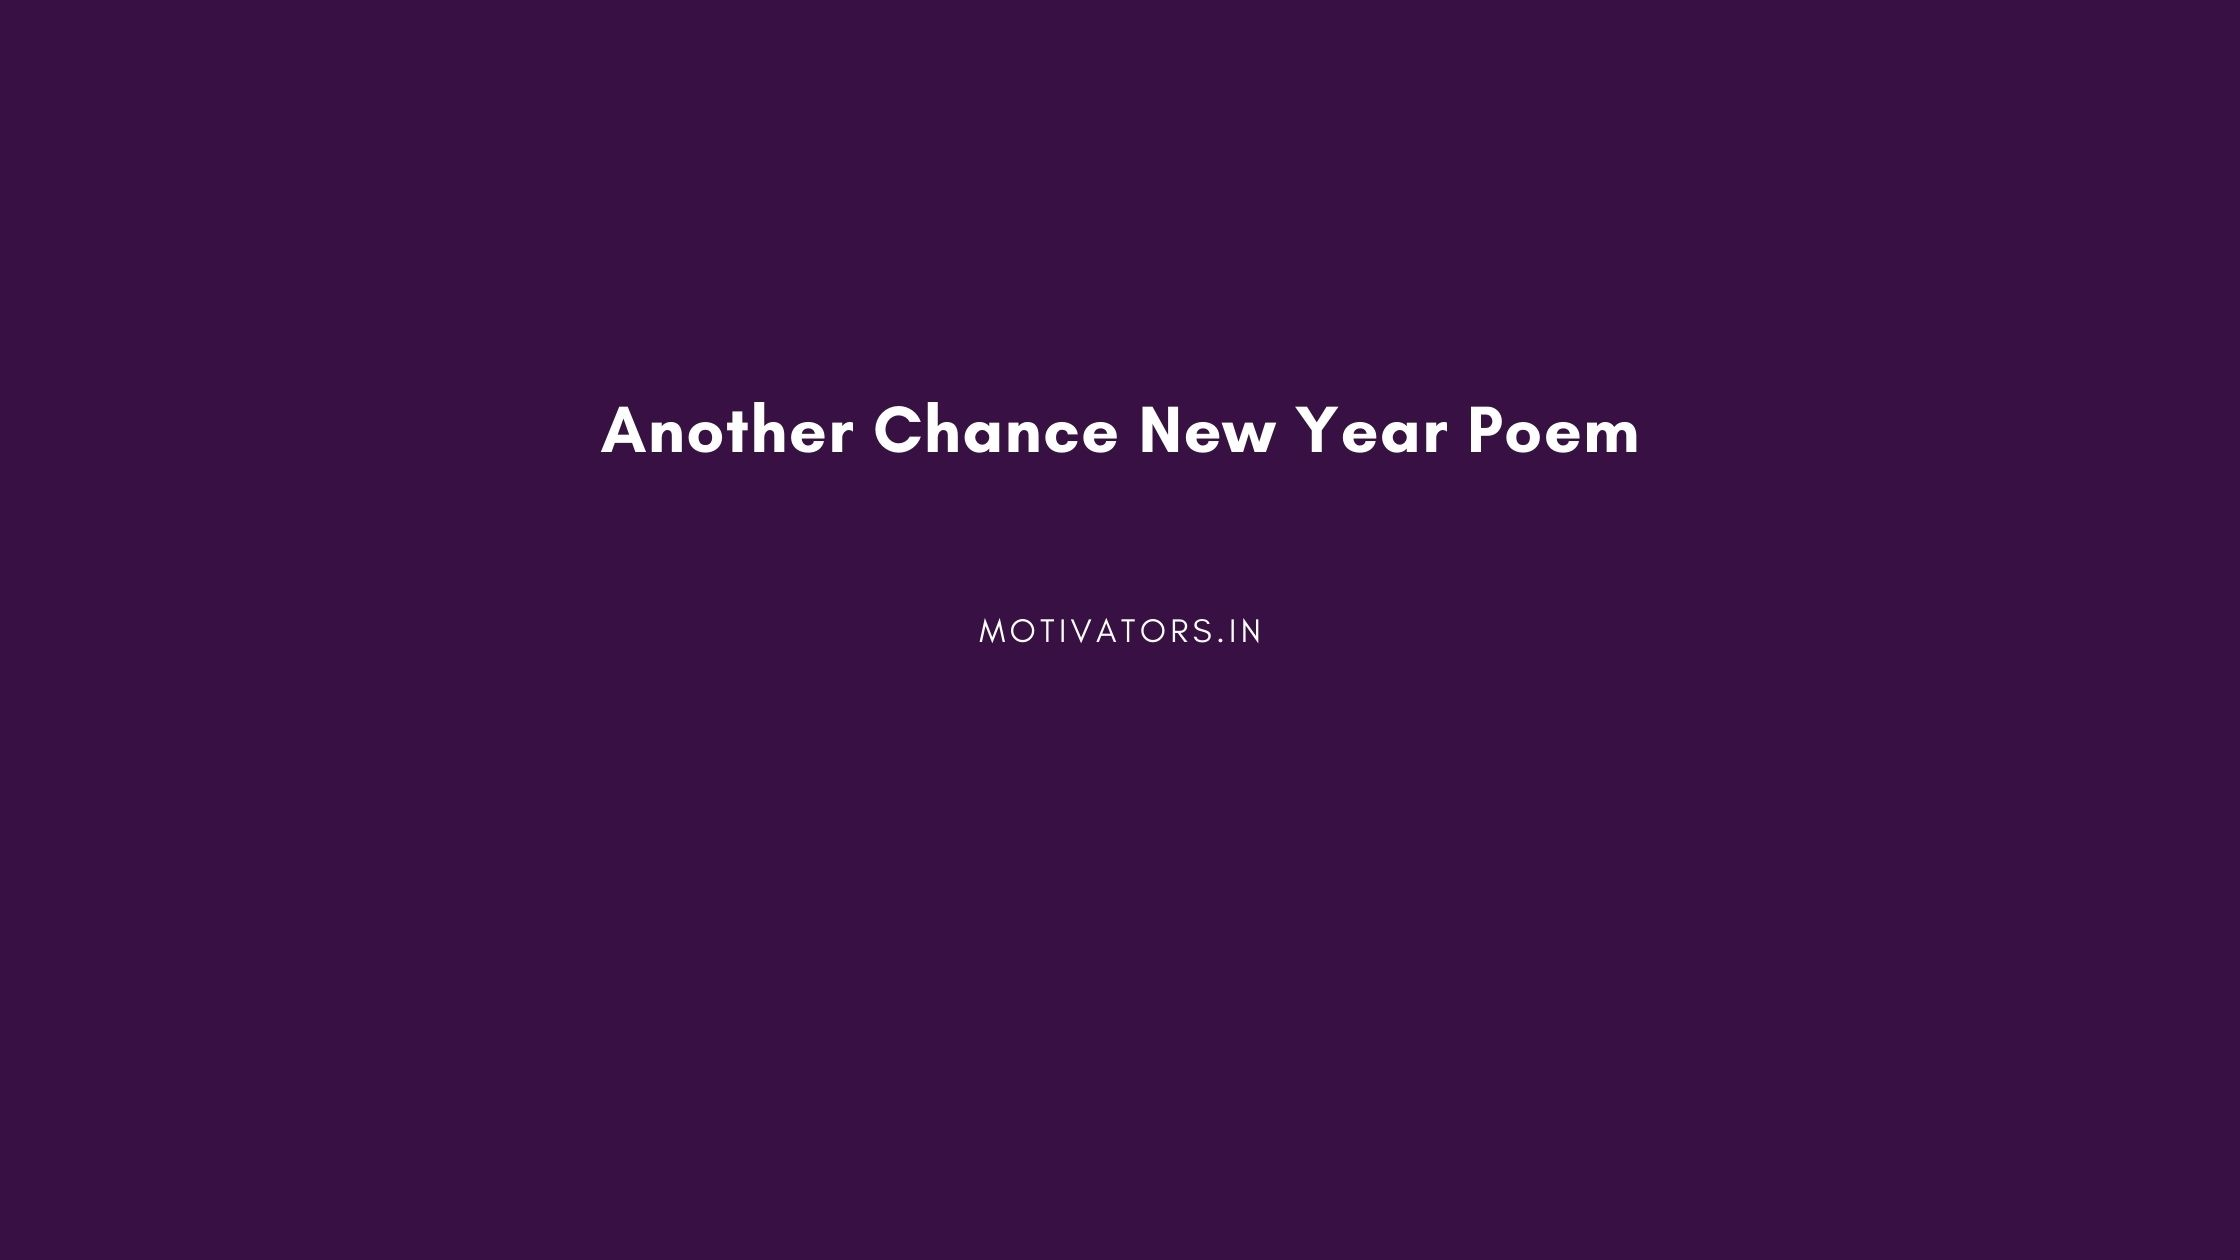 Another Chance New Year Poem